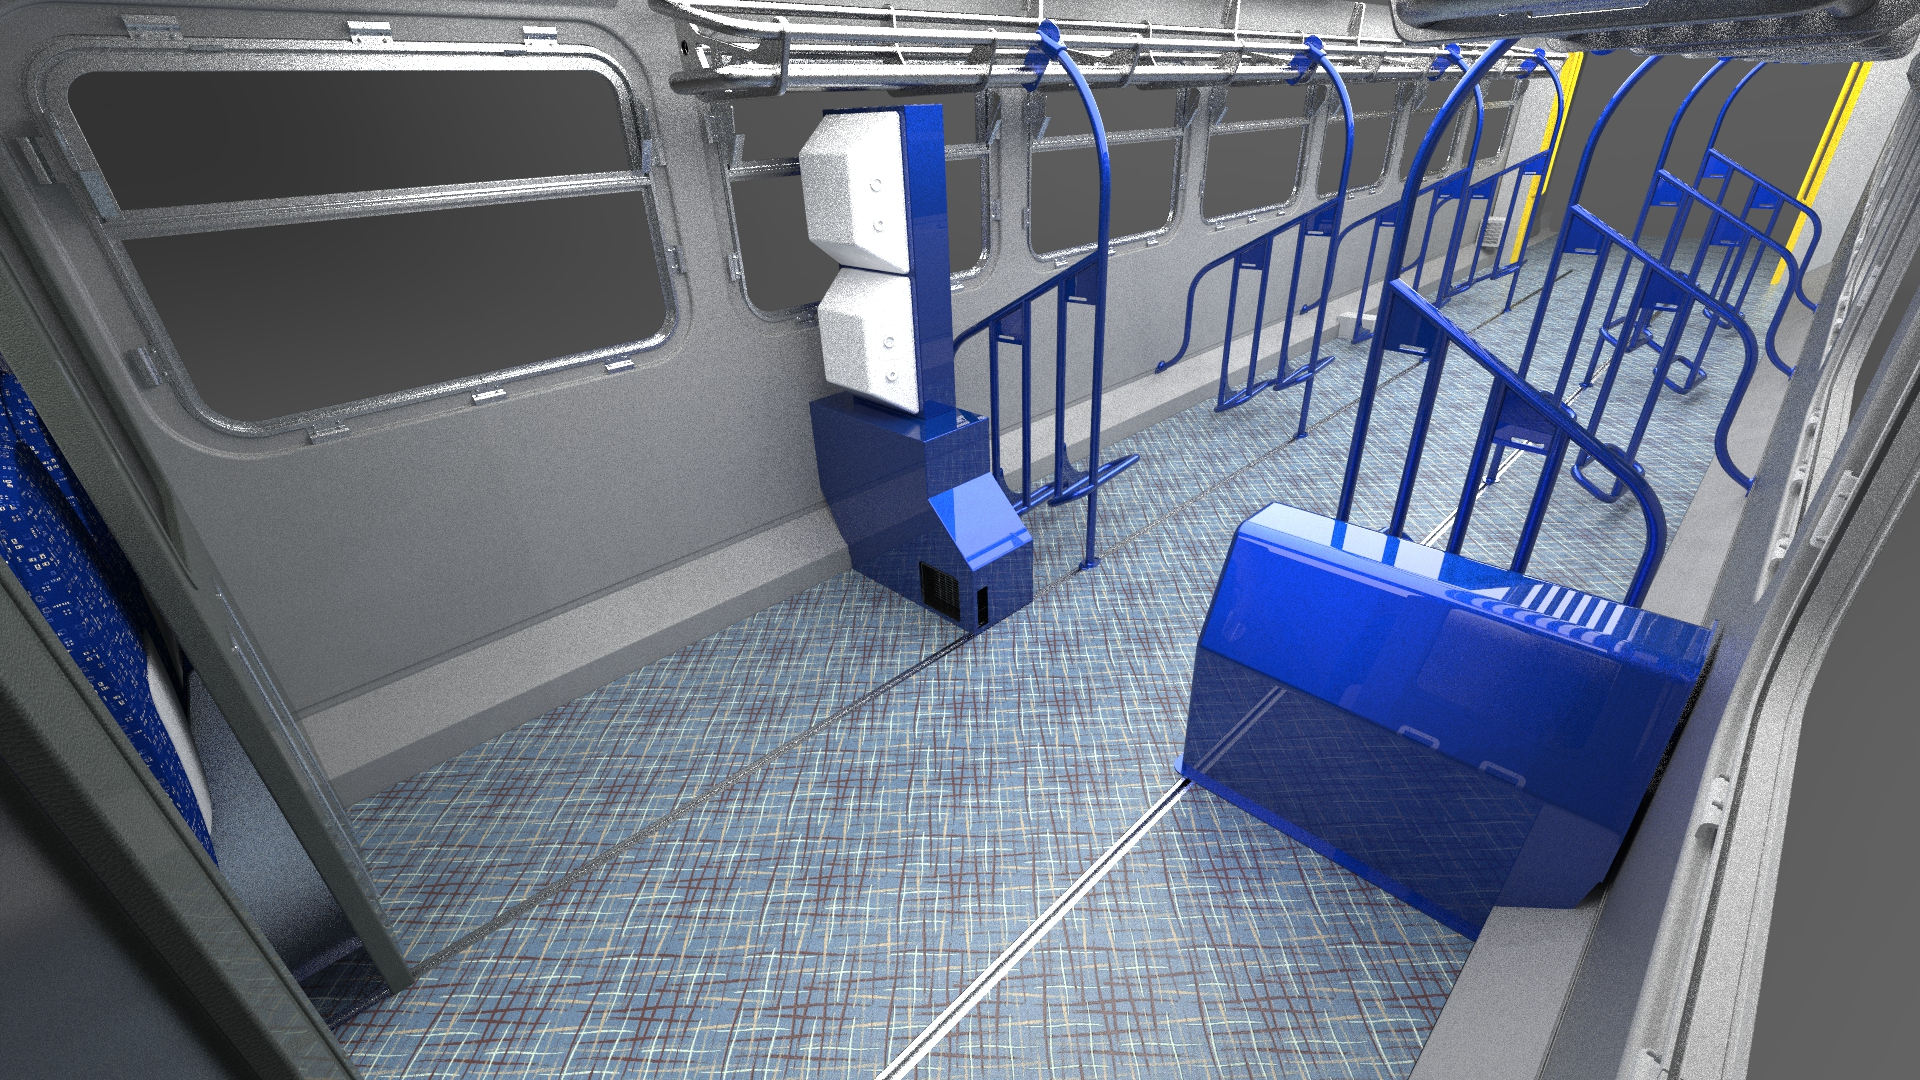 ScotRail is transforming five Class 153 trains to carry up to 20 bikes to enhance existing services on the West Highland Line, providing custom designed racks to accommodate bikes, sporting equipment and large items of luggage as well as more seats for customers.